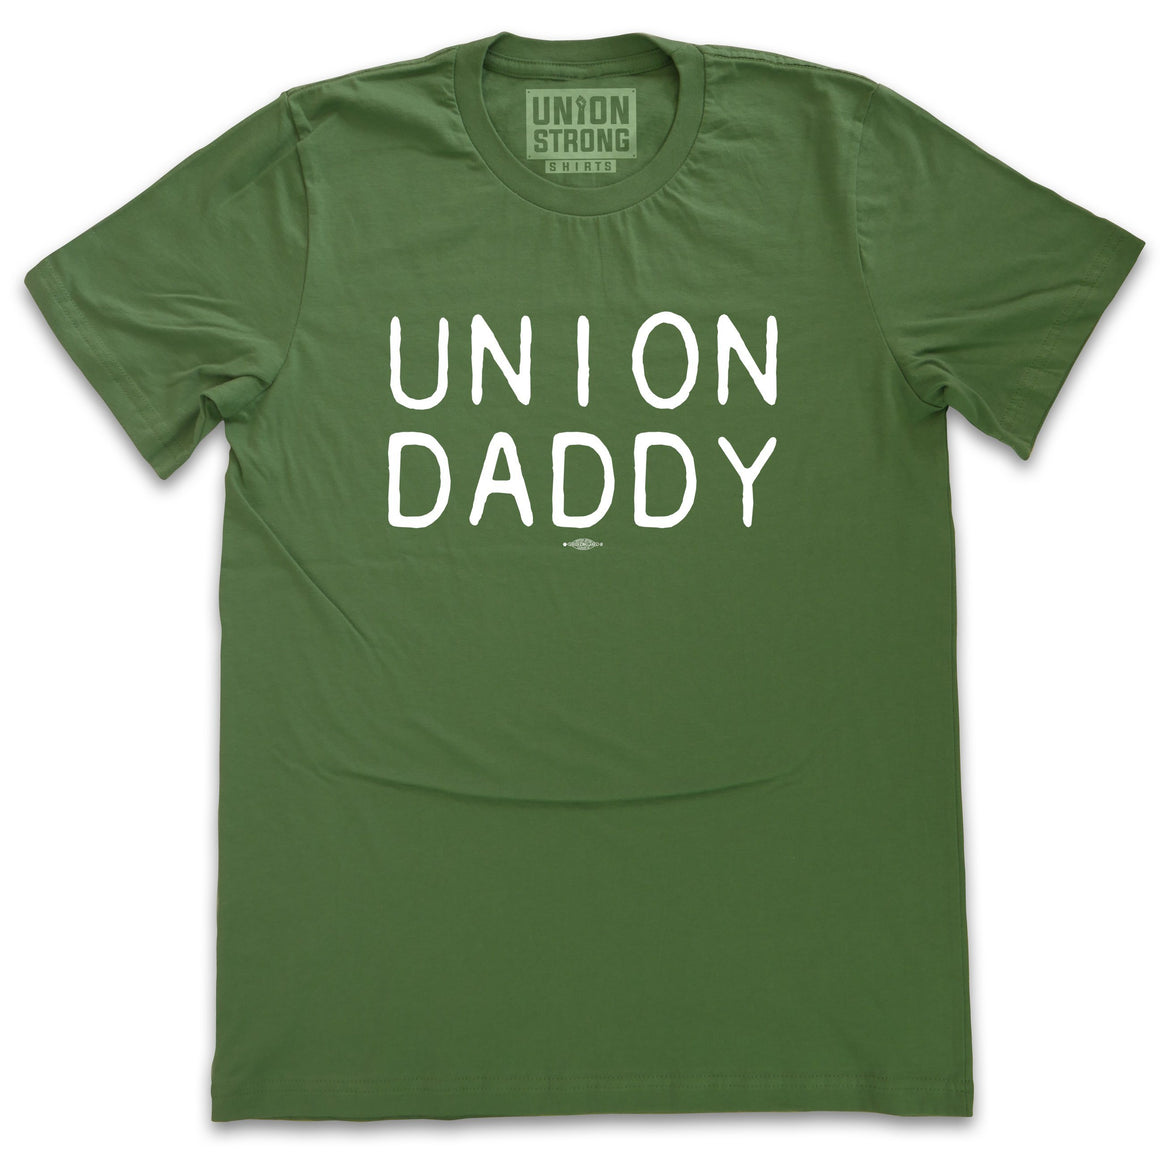 Union Daddy Shirts unionstrongshirts